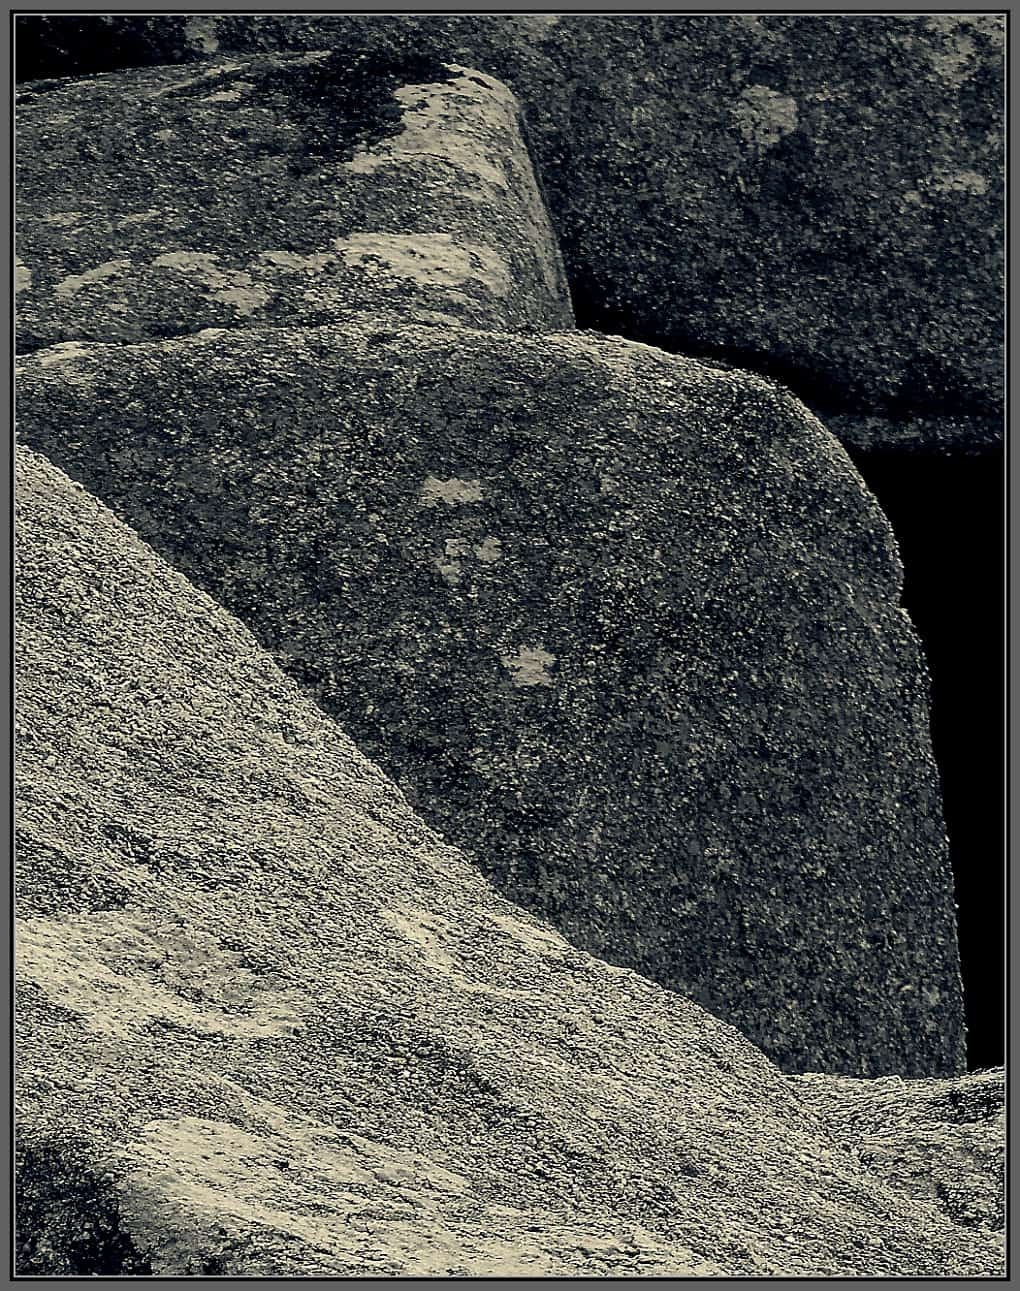 Large granite rocks.